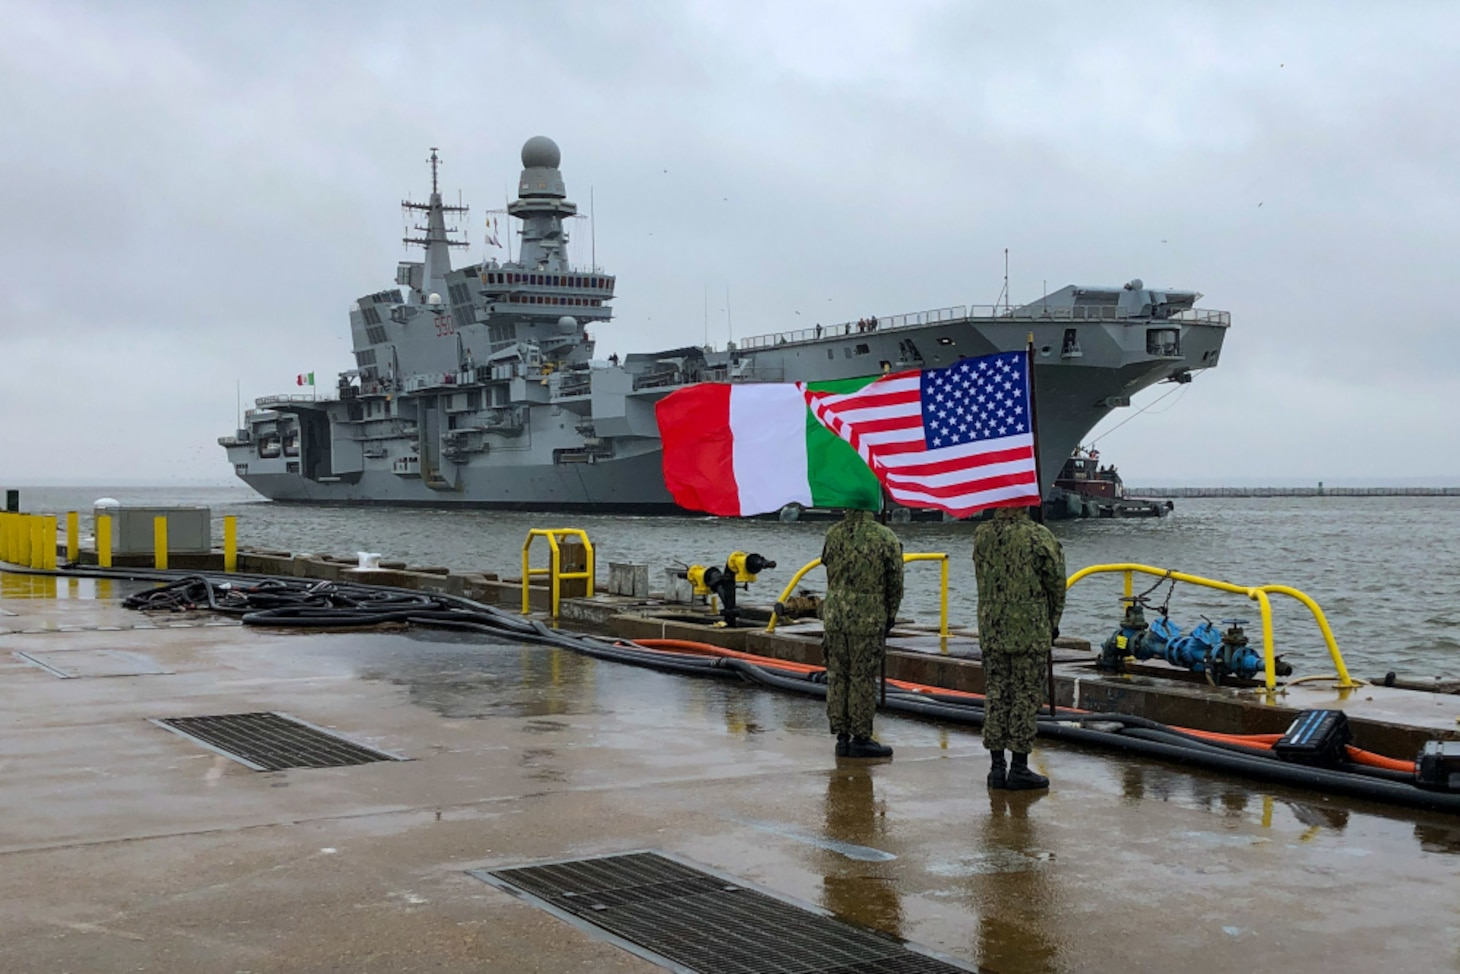 "U.S. Sailors, assigned to the aircraft carrier USS John C. Stennis (CVN 74), greet the Italian Navy flagship, aircraft carrier ITS Cavour (CVH 550), as it arrives at Naval Station Norfolk, Virginia, Feb. 13, 2021. The Cavour's visit is part of a series of operations alongside U.S. military assets to attain the Italian Navy's ""Ready for Operations"" certification to safely land and launch F-35B aircraft, U.S. 2nd Fleet exercises operational authorities over assigned ships, and landing forces on the East Coast and the Atlantic."